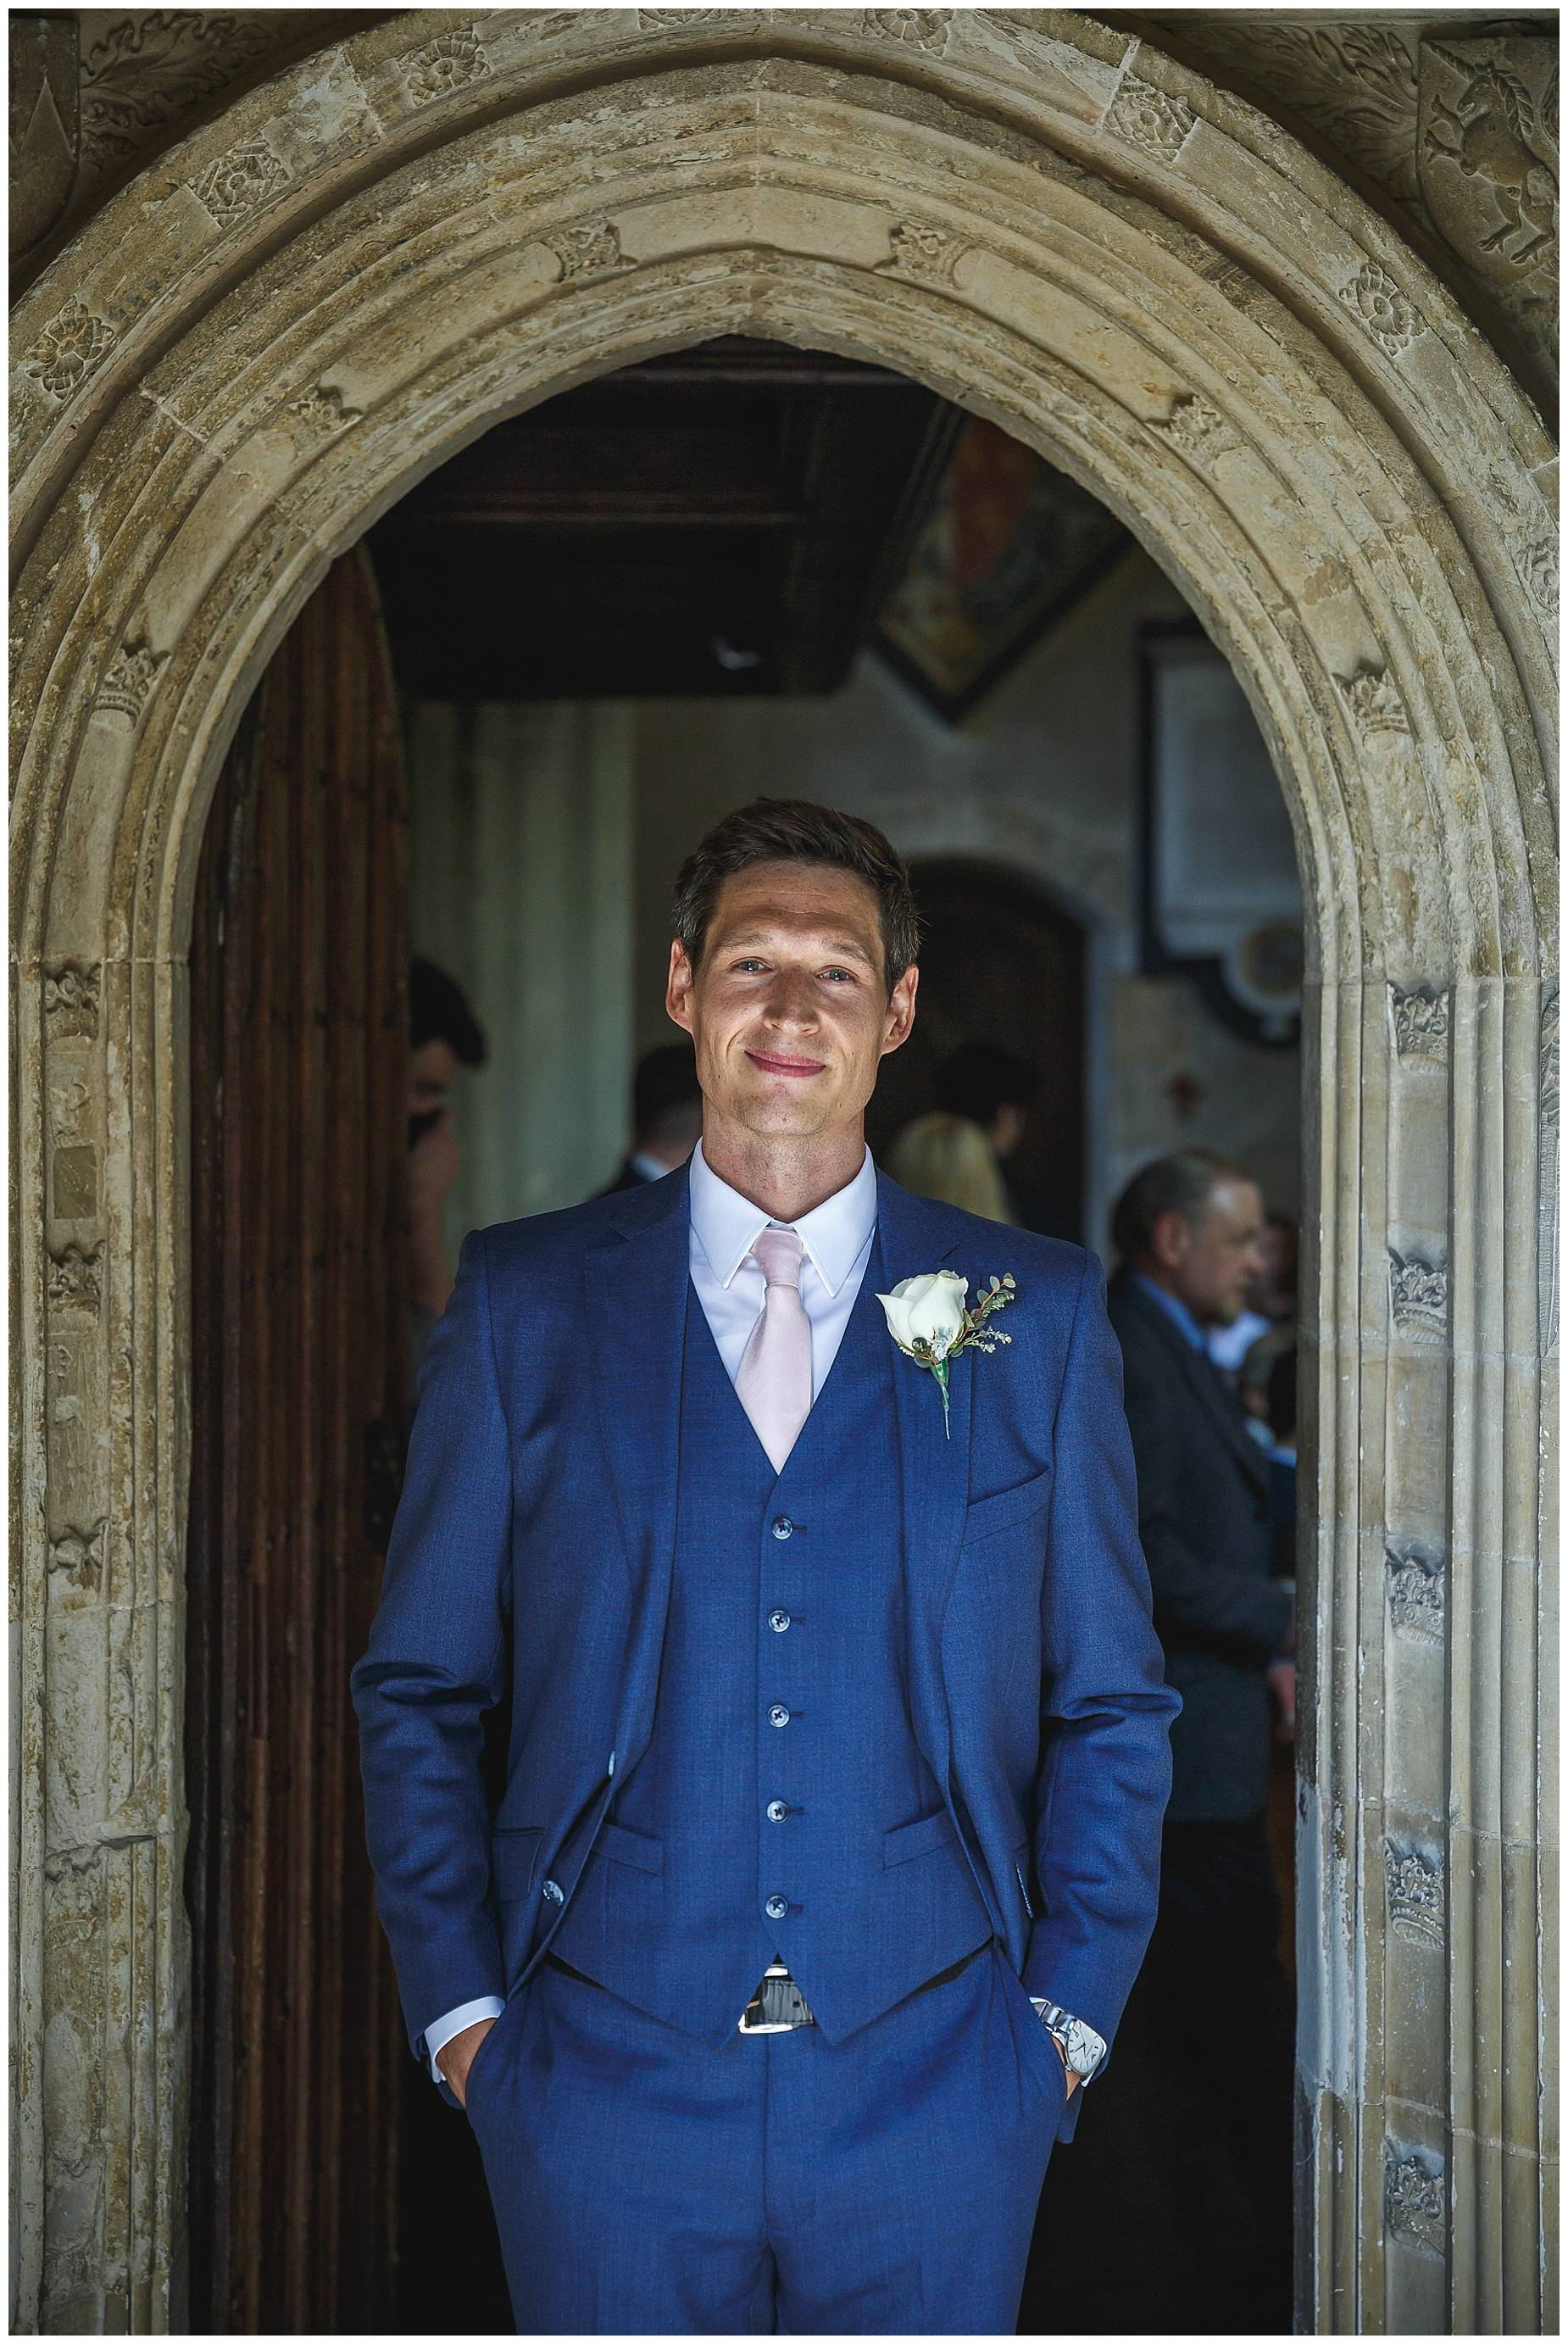 Groom in church door